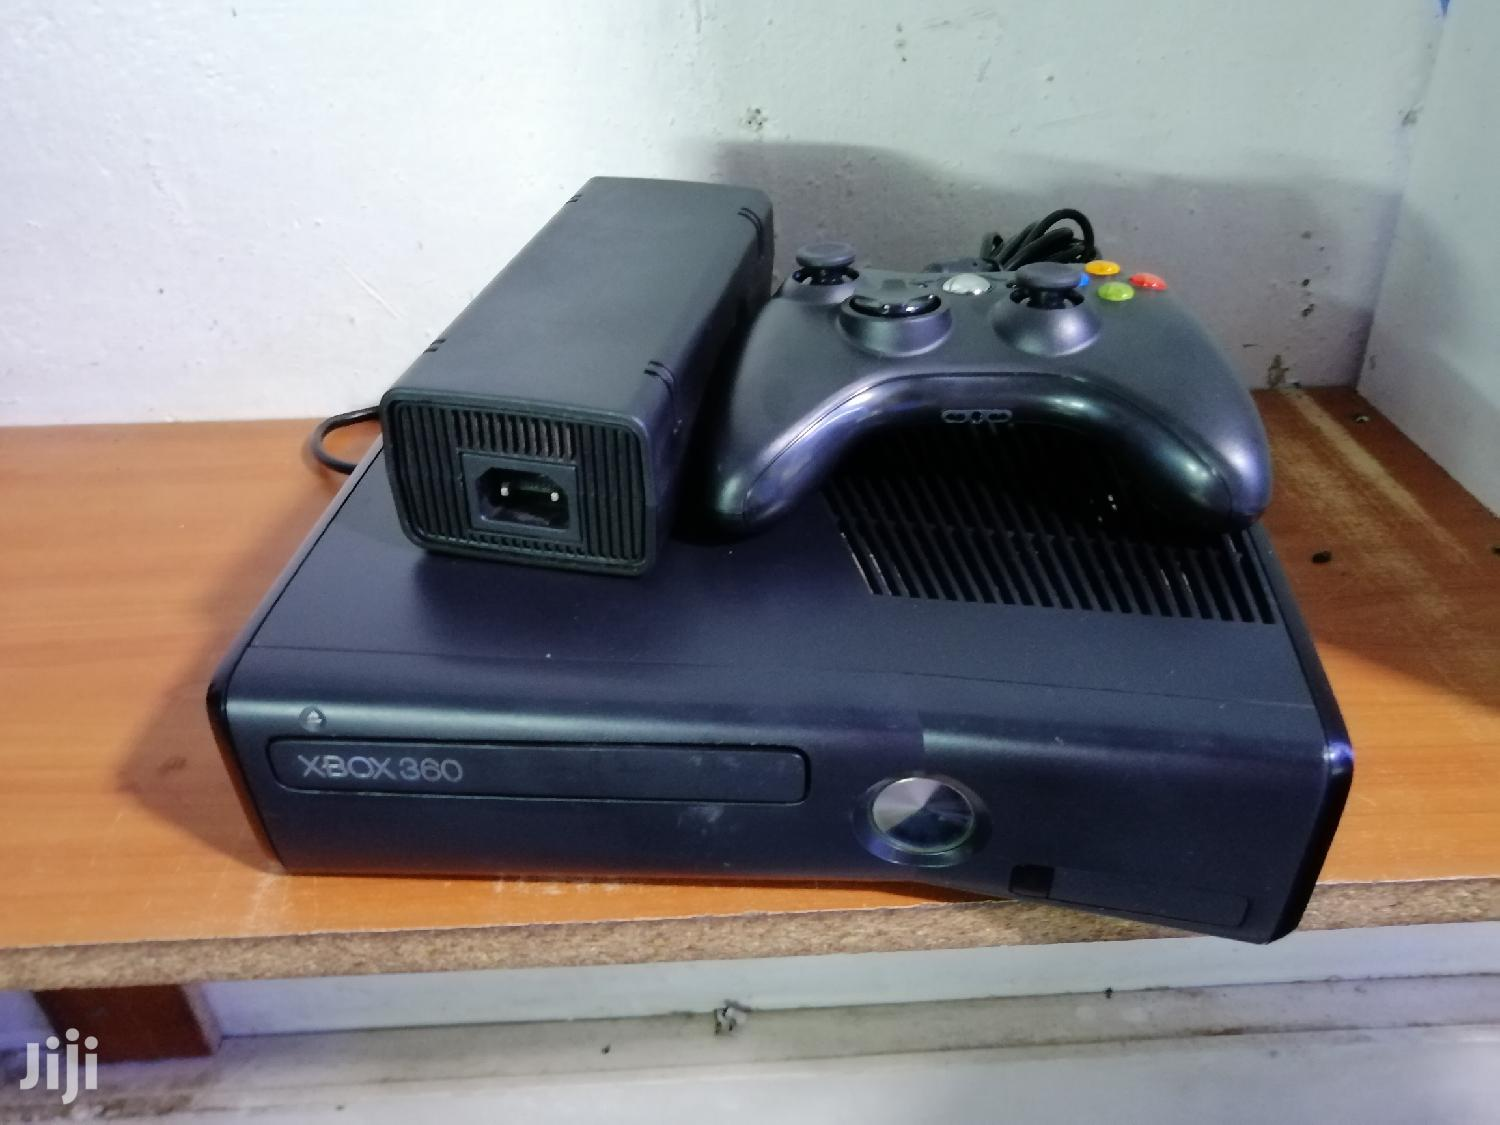 Xbox 360 Chipped With 15 Games